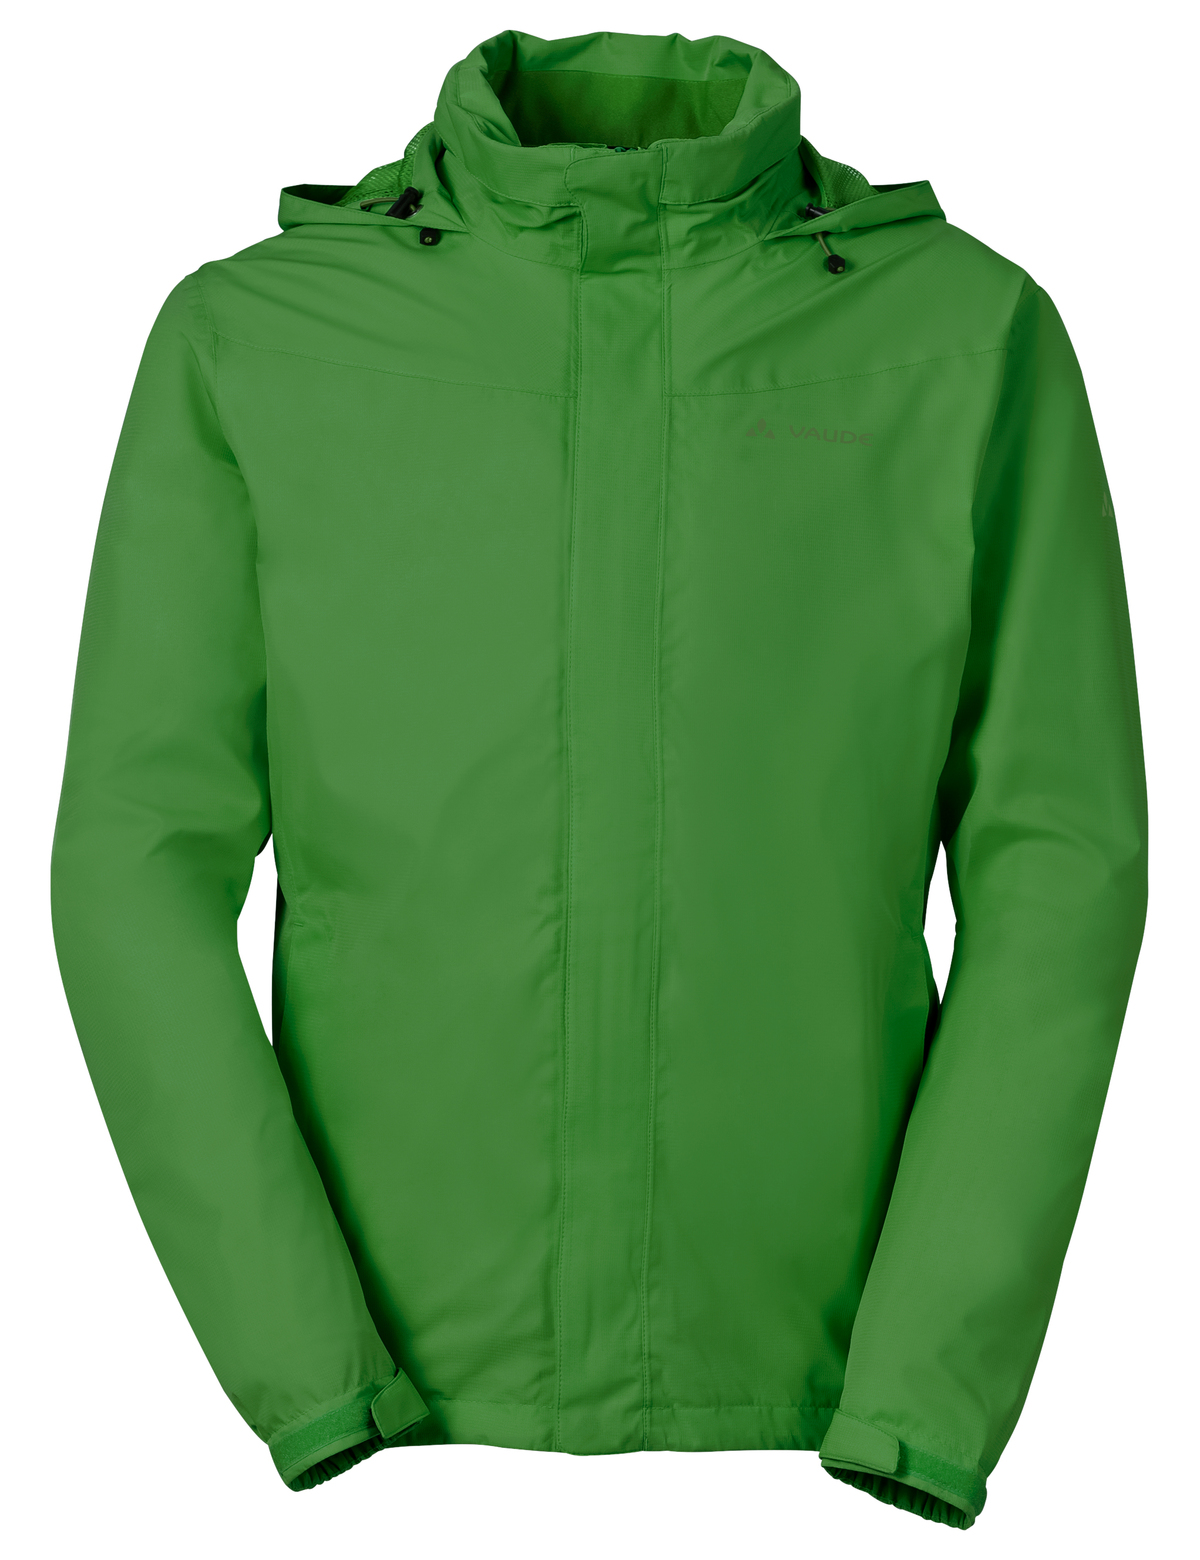 VAUDE Men´s Escape Bike Light Jacket parrot green Größe XL - 2-Rad-Sport Wehrle